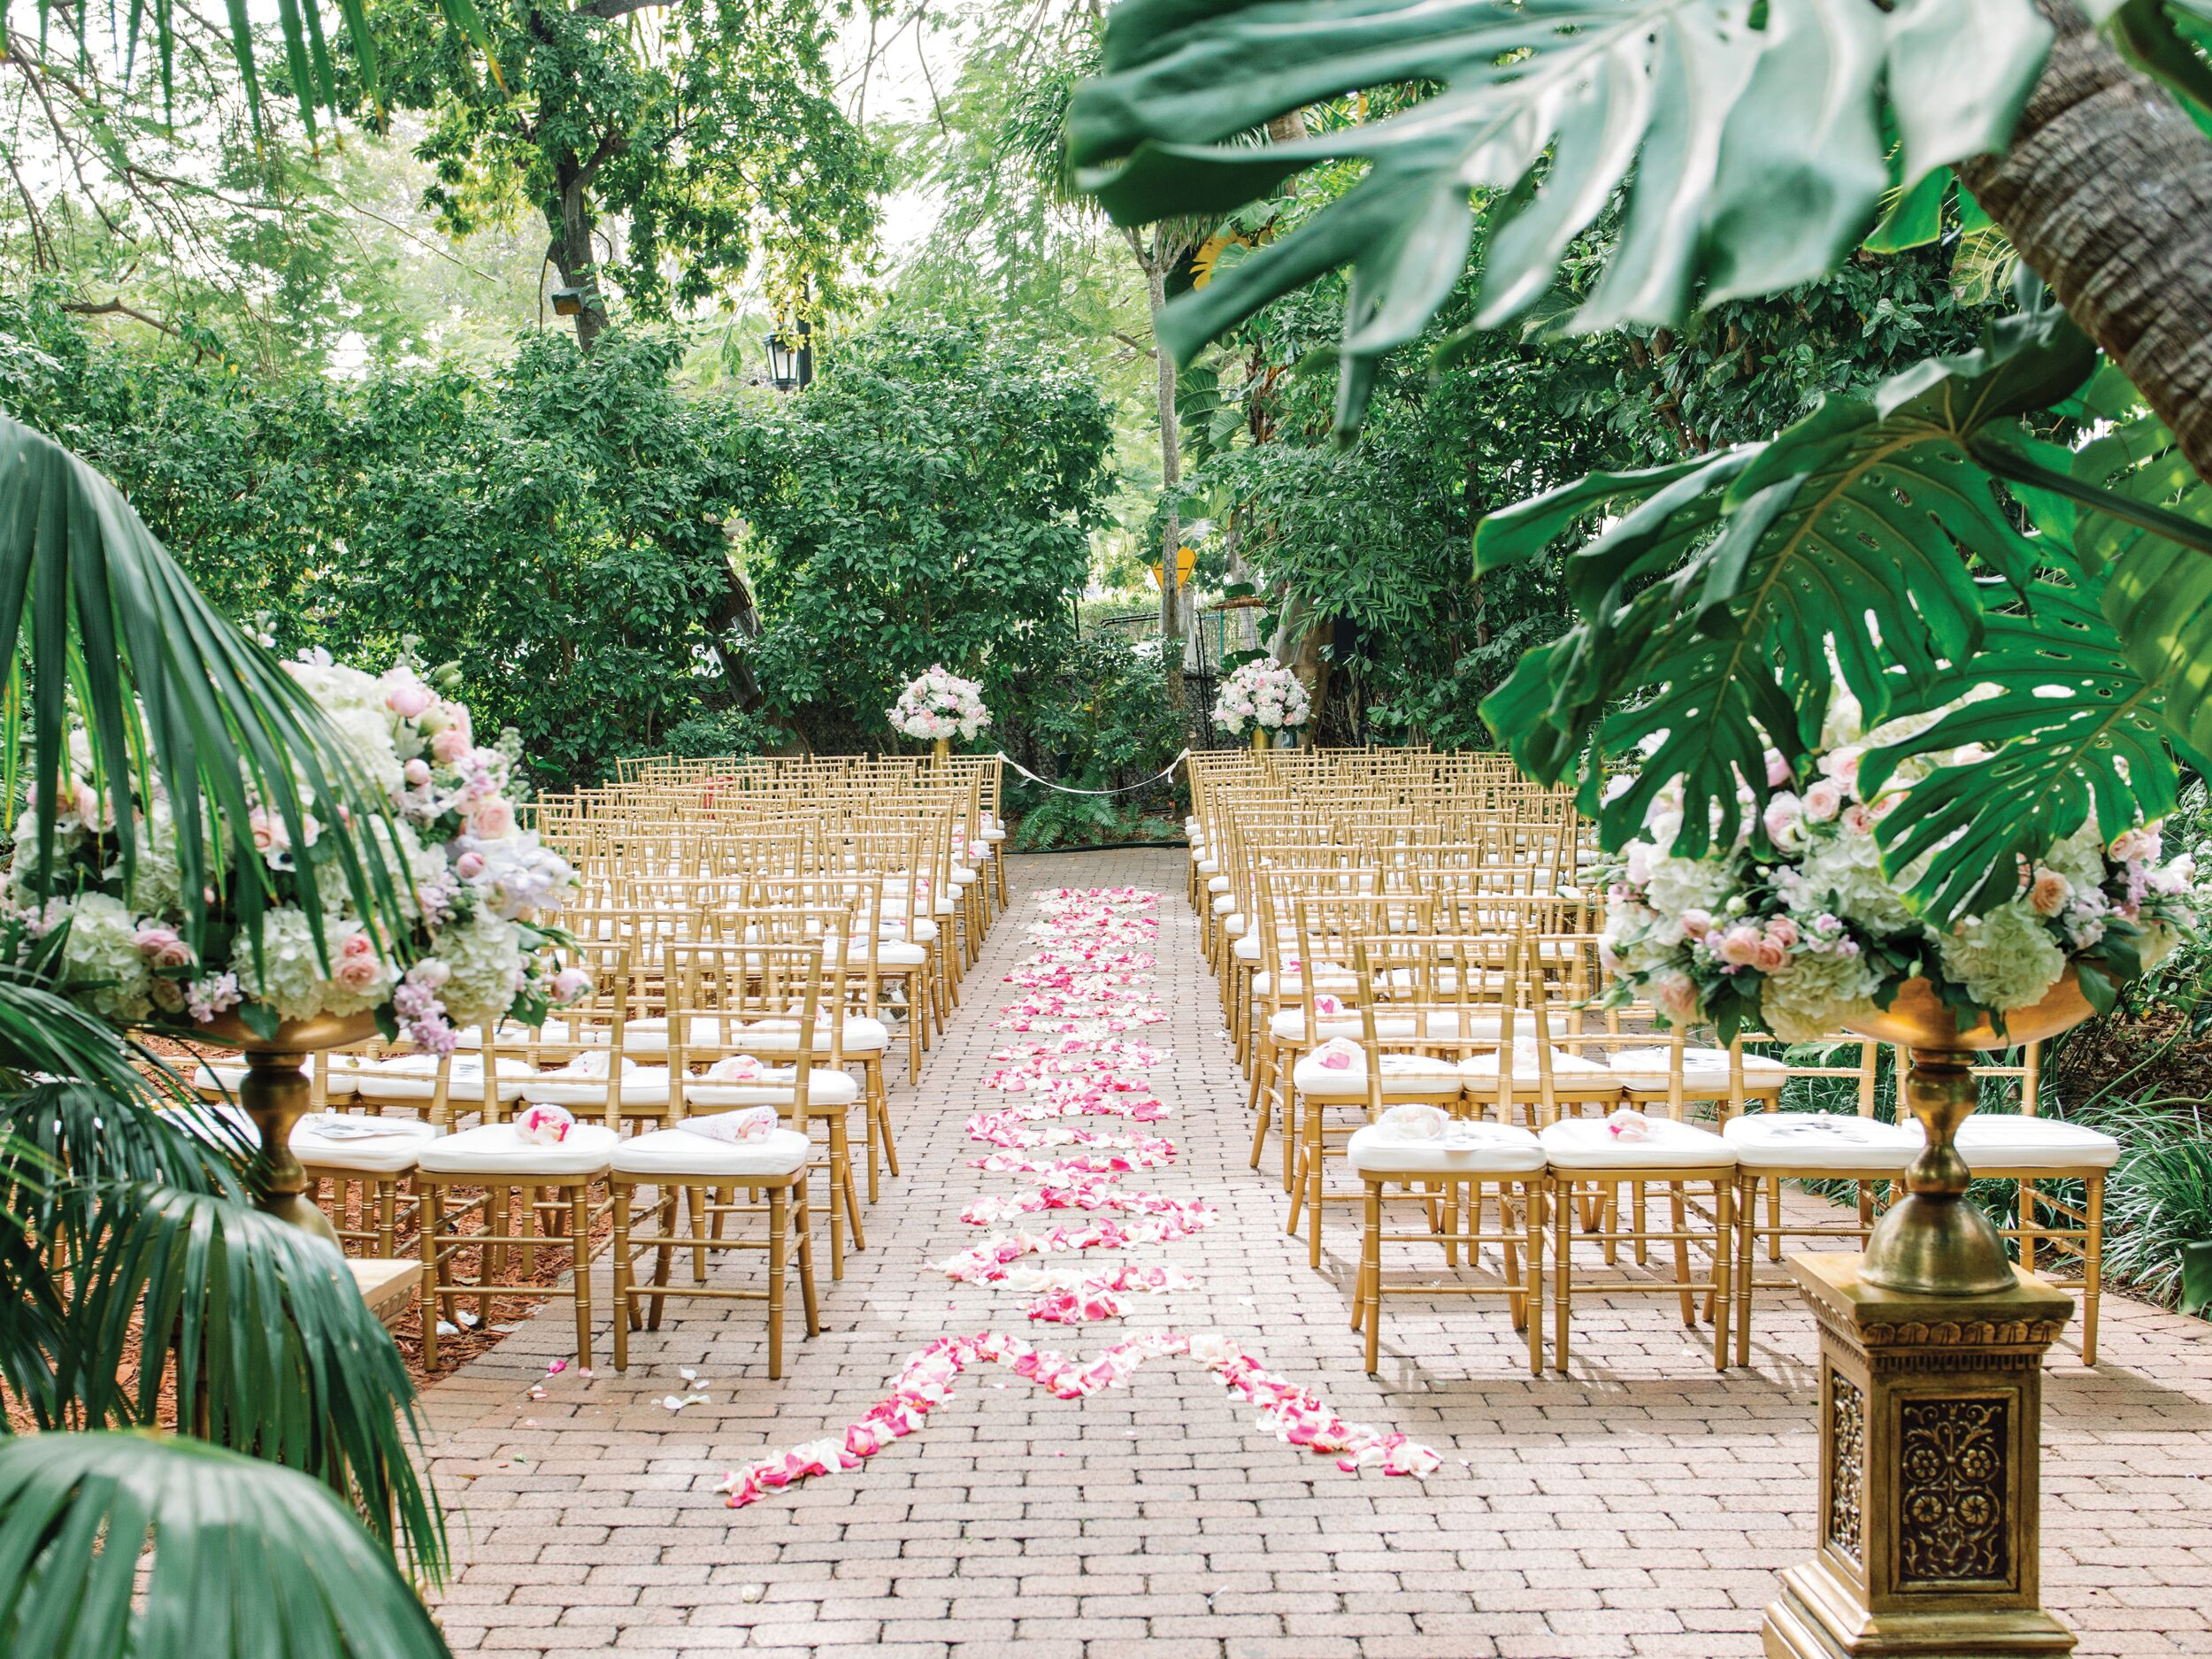 Wedding Ceremony Decorations The 7 Best Ways To Decorate Your Wedding Ceremony Aisle